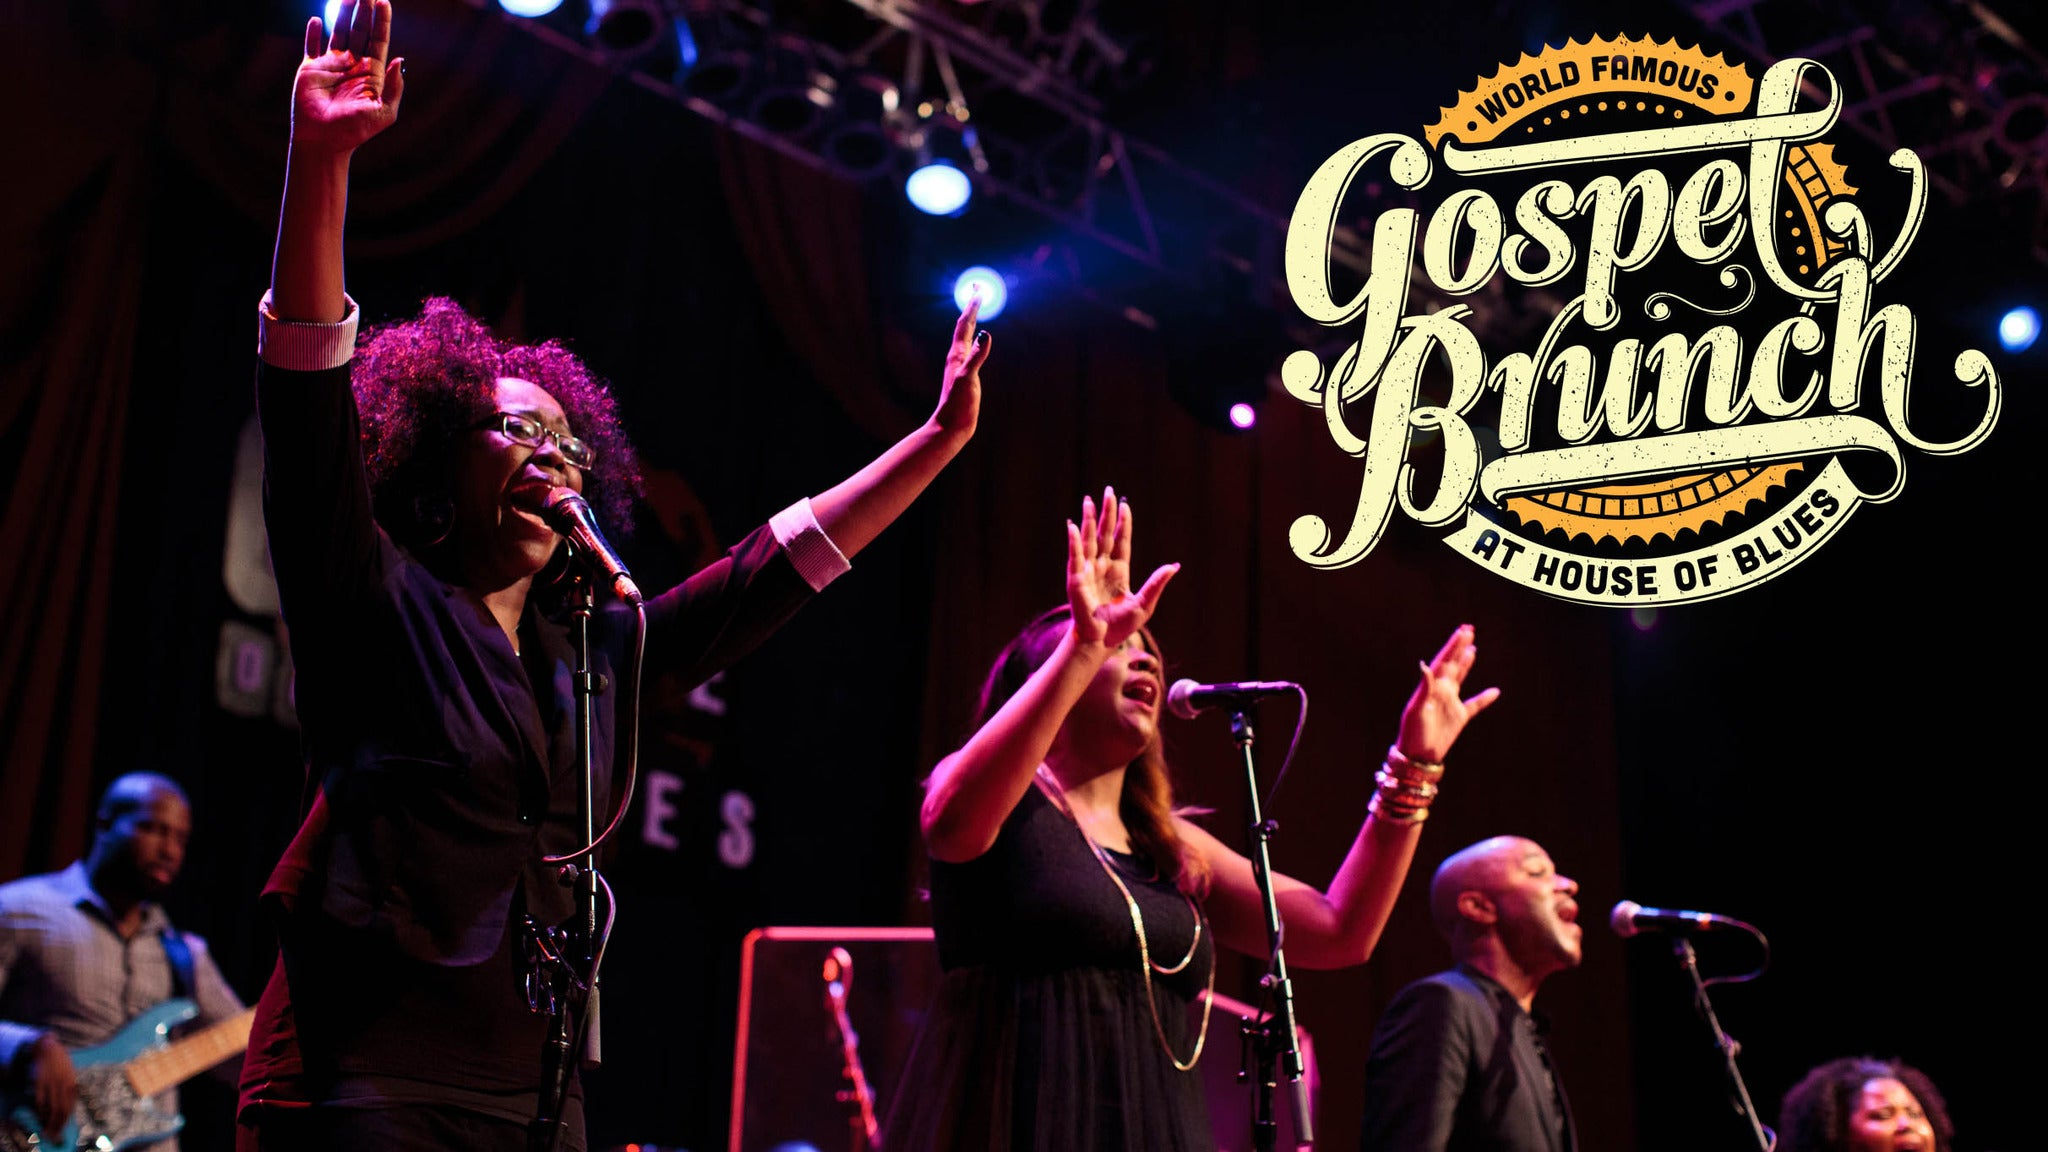 Gospel Brunch at House of Blues San Diego